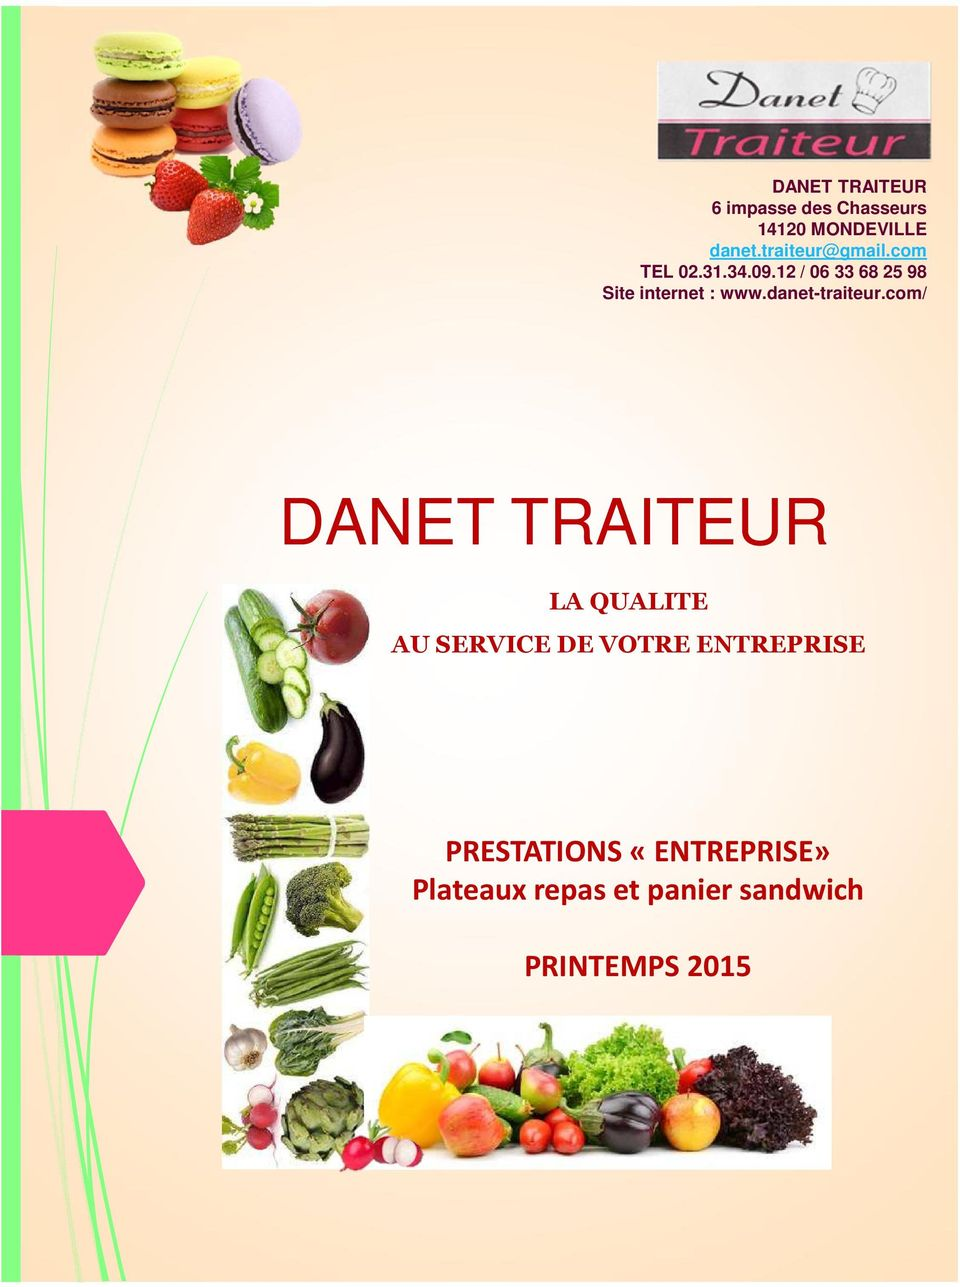 12 / 06 33 68 25 98 Site internet : www.danet-traiteur.